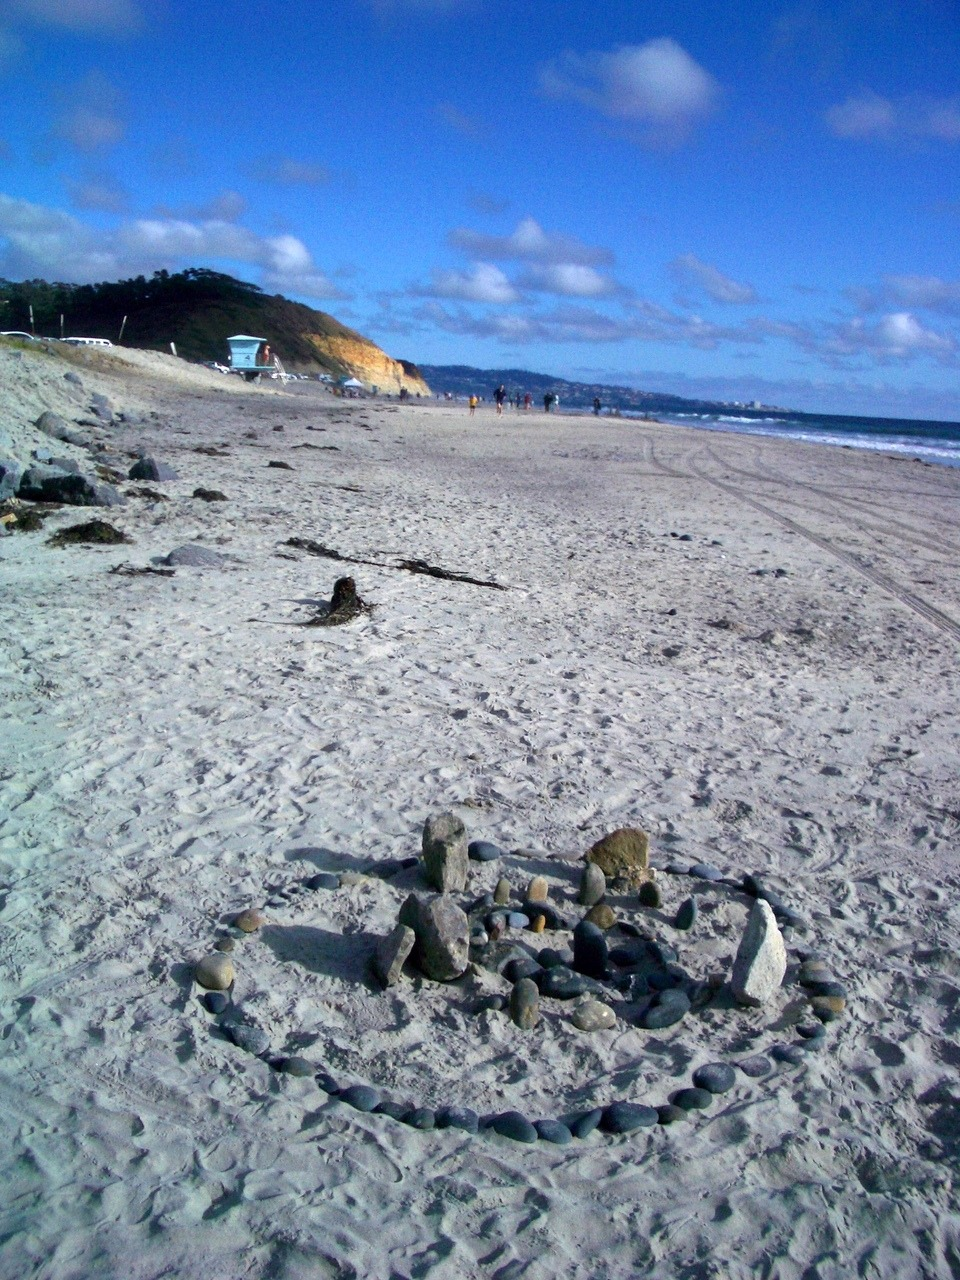 A sandy beach beneath a lightly-clouded blue sky.  In the background is the verdant cliffside of Torrey Pines State Park and hills beyond, with distant figures of beach-walkers and a blue lifeguard shack. At the fore stands a circle made of pebbles, stones arranged inside the circle like some kind of miniature henge.